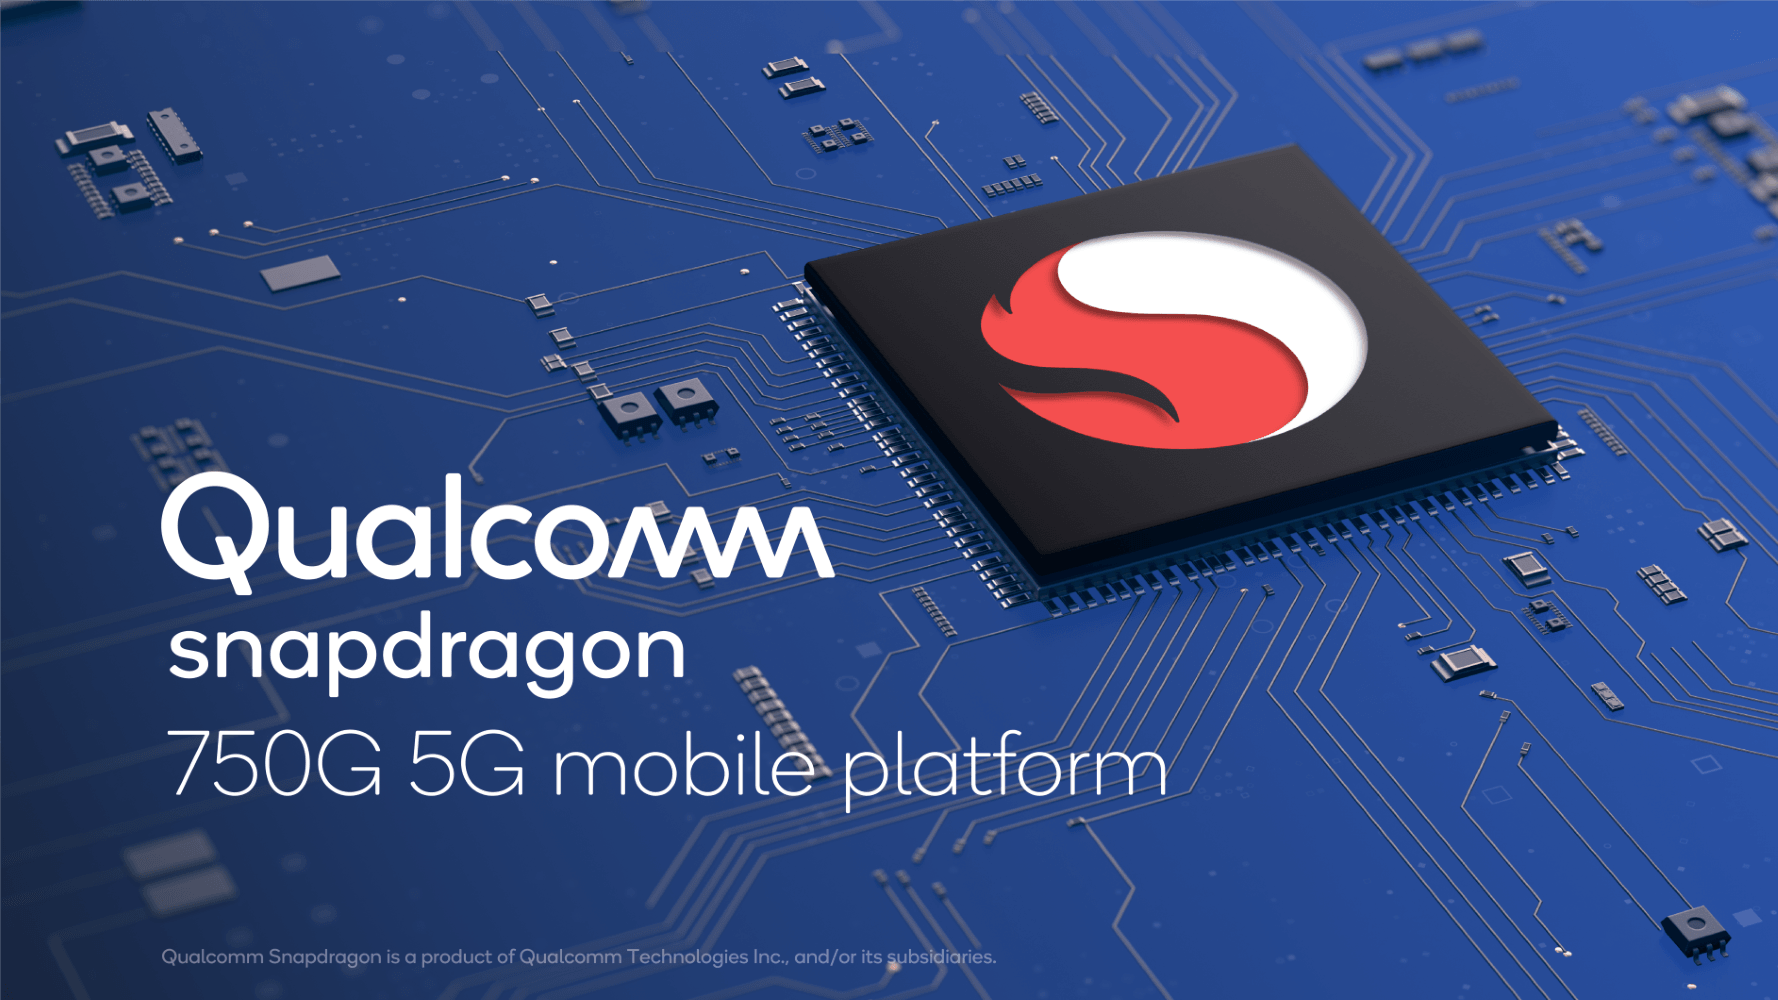 New Qualcomm Snapdragon 750G 5G 7-Series Mobile Platform small_qualcomm_snapdragon_750g_5g_mobile_platform_graphic.png